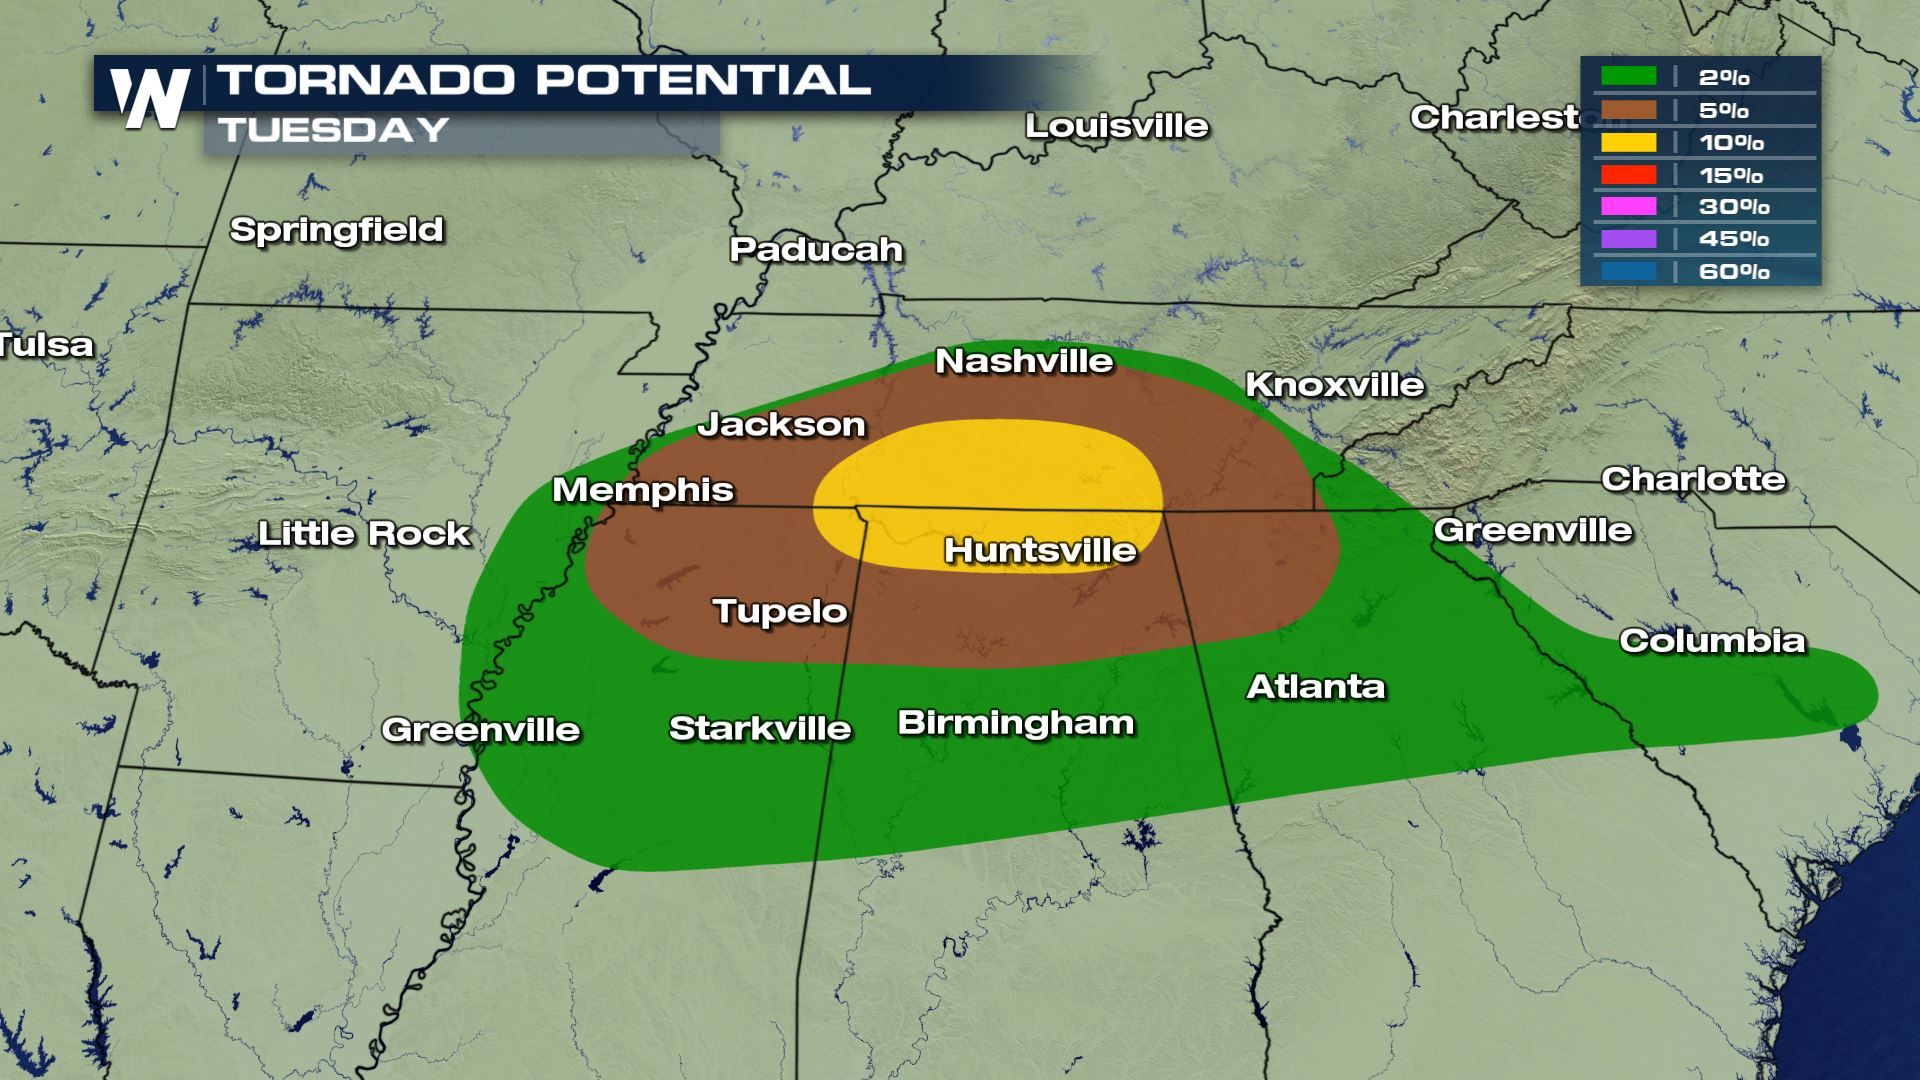 Numerous Severe Storms Possible for the Tennessee Valley Tuesday